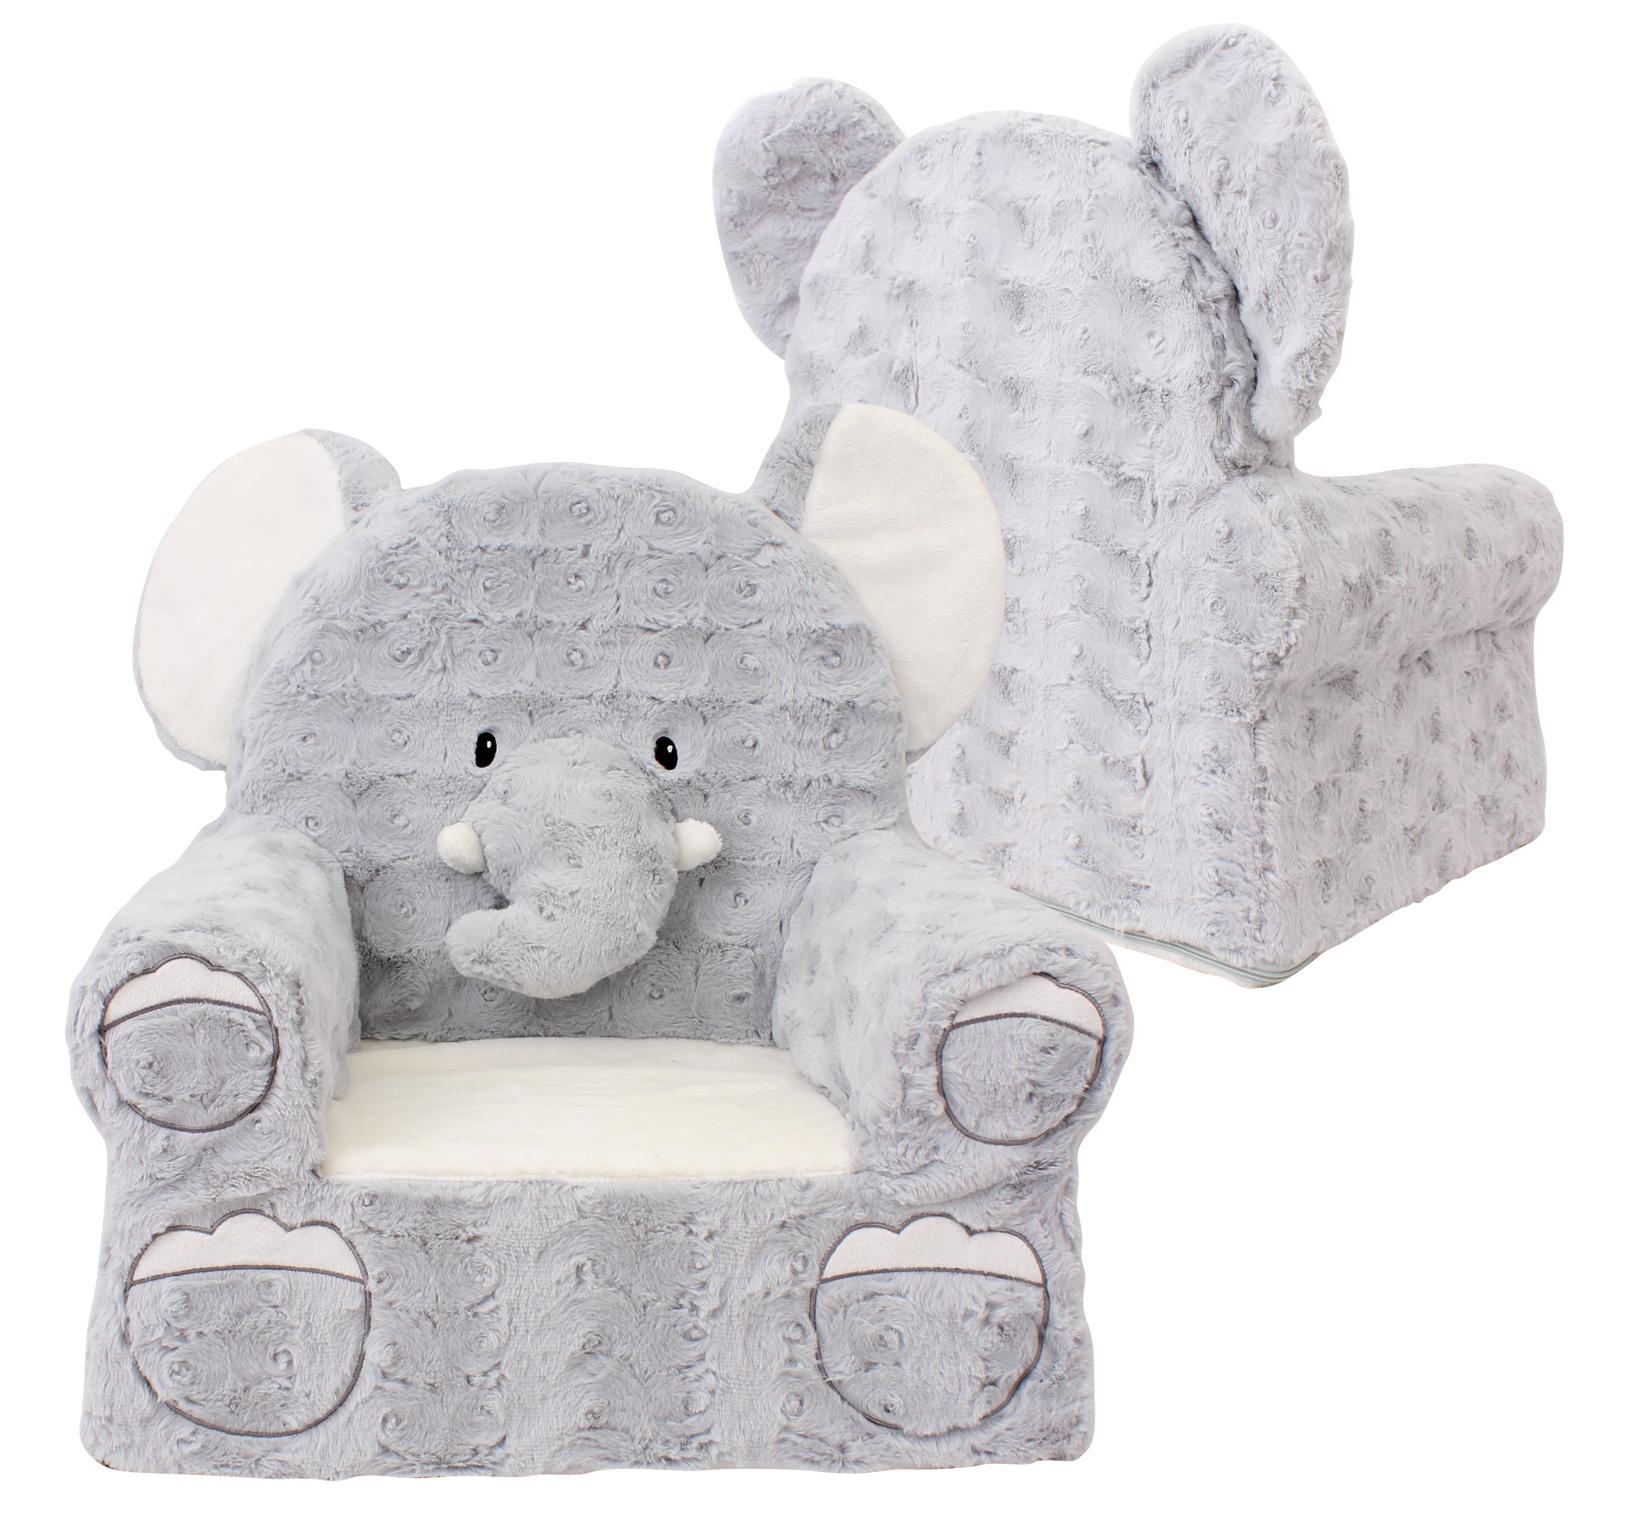 Plush Toddler Chair Sweet Seats Elephant Plush Childrens Chair Grey One Size